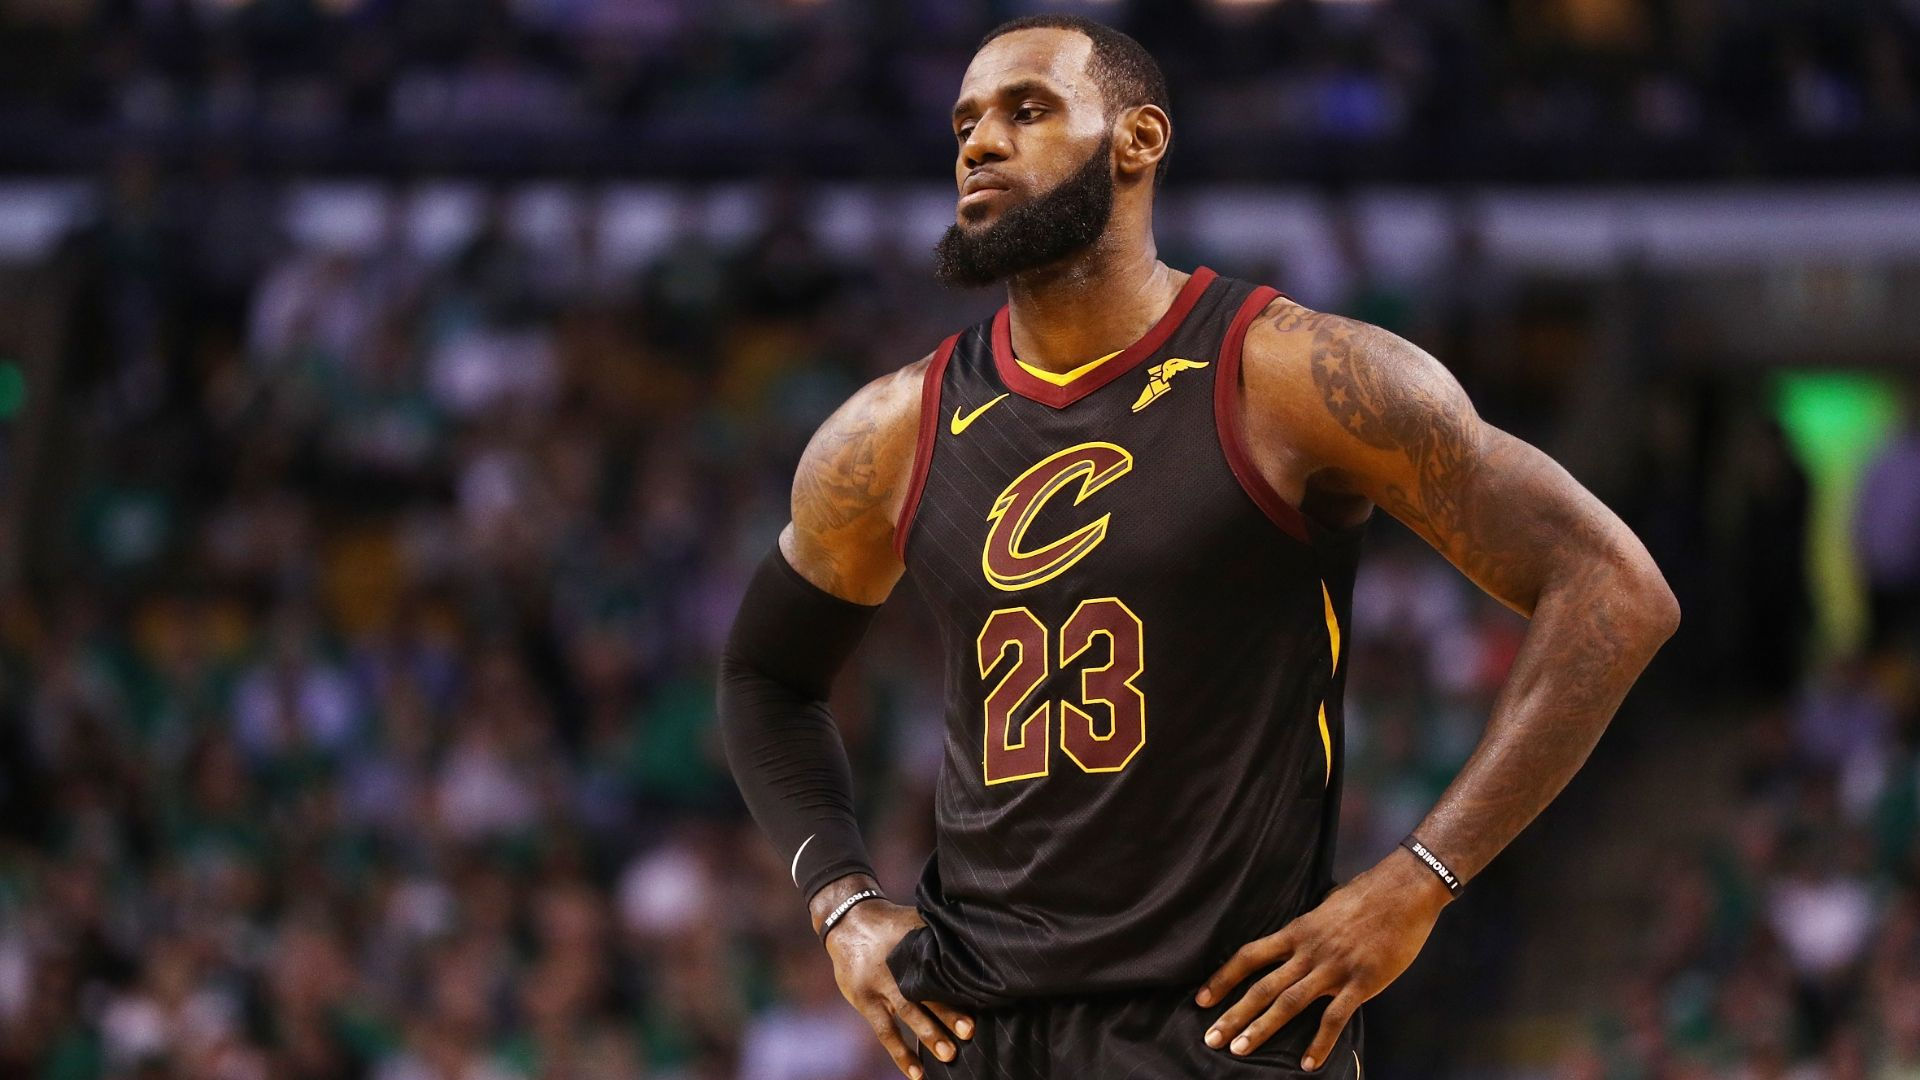 Is this the end for LeBron and the Cavs?